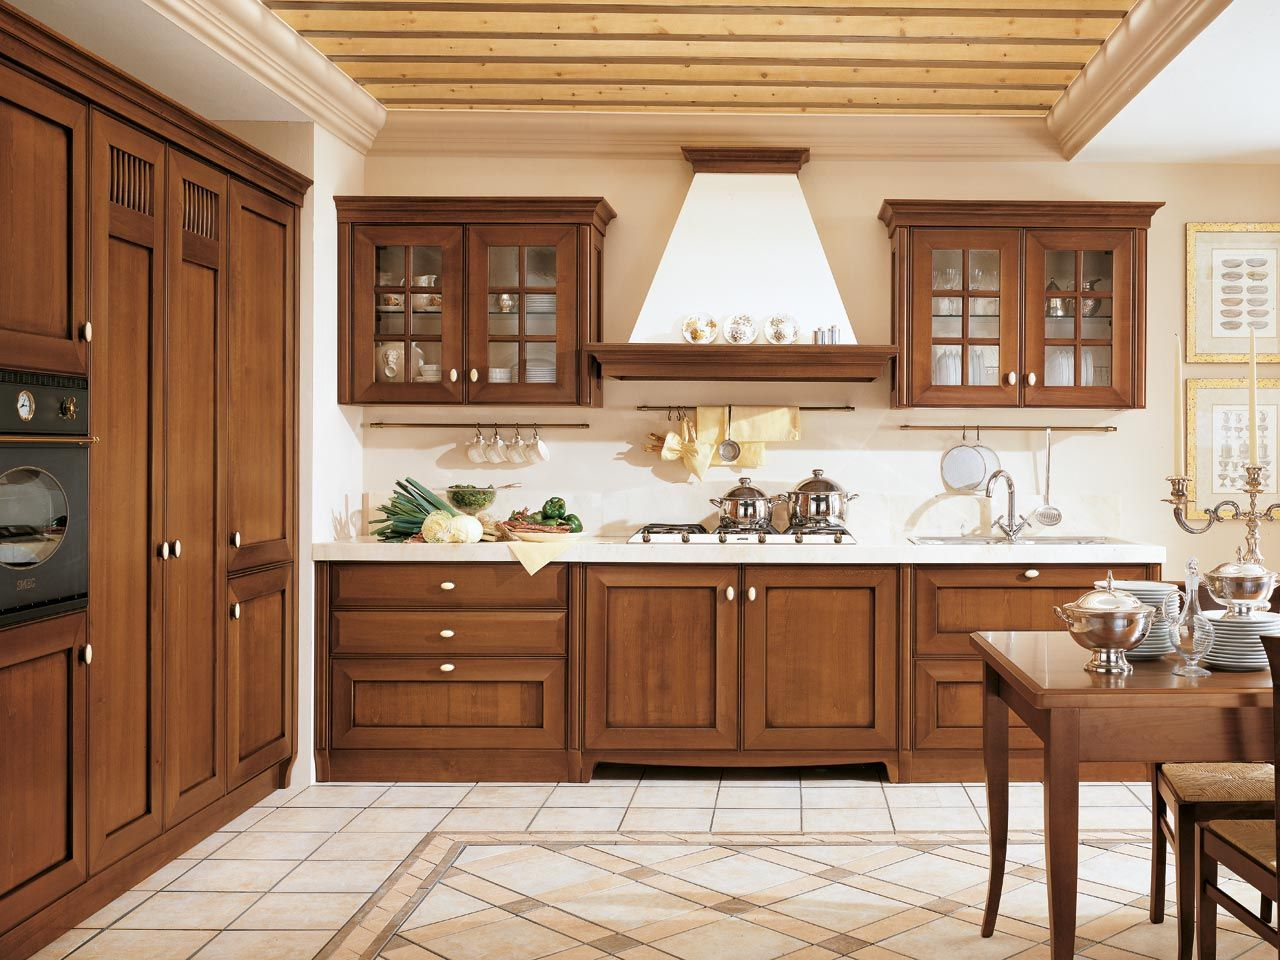 Wood Wall Kitchen Cabinet With Frosted Glass Doors And Modern Pot ...